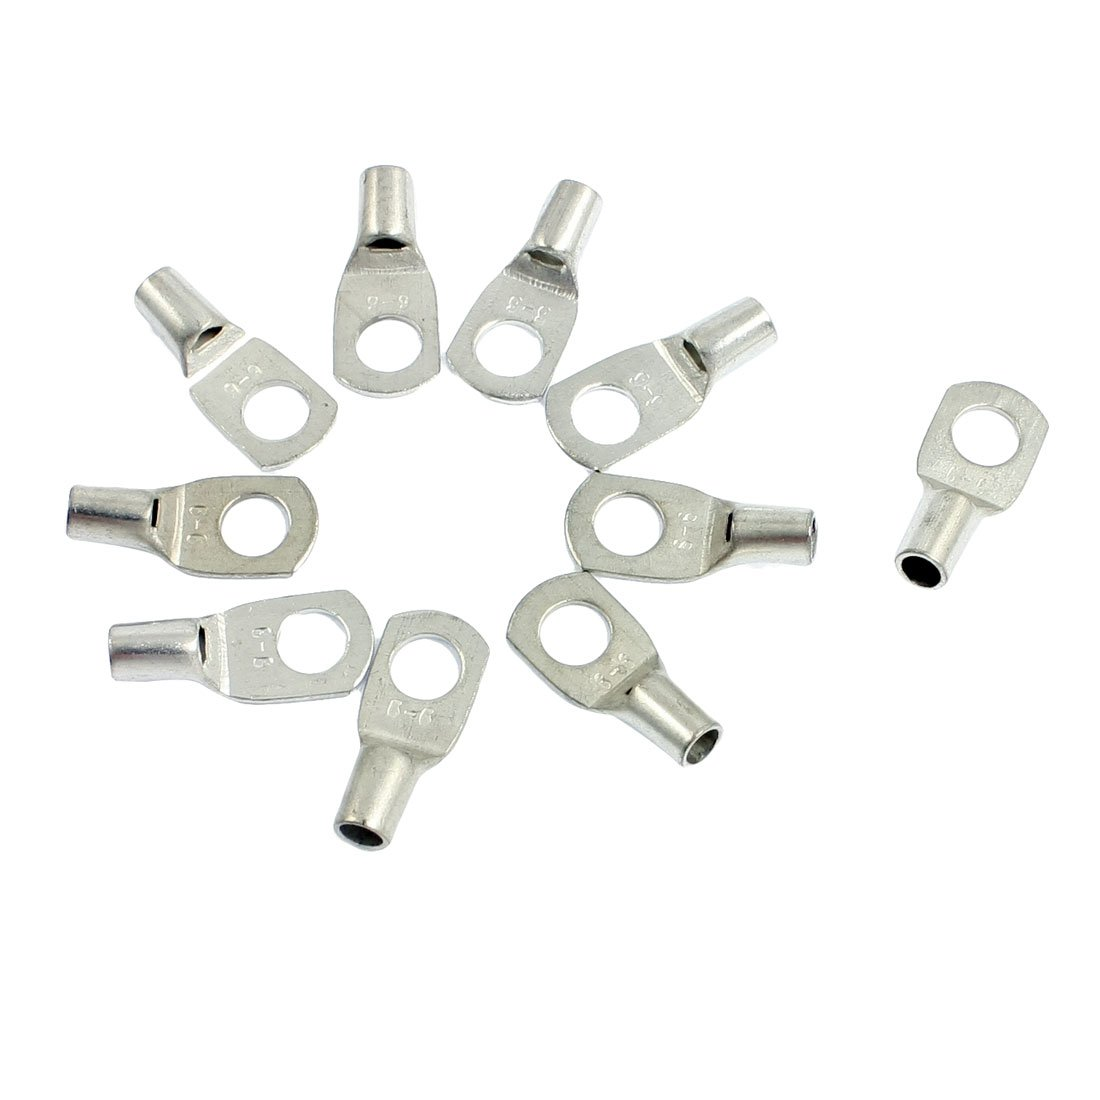 10 Pcs 5/32' Connecting Hole Copper Non Insulated Ring Terminal Connectors Sourcingmap a12080200ux0010